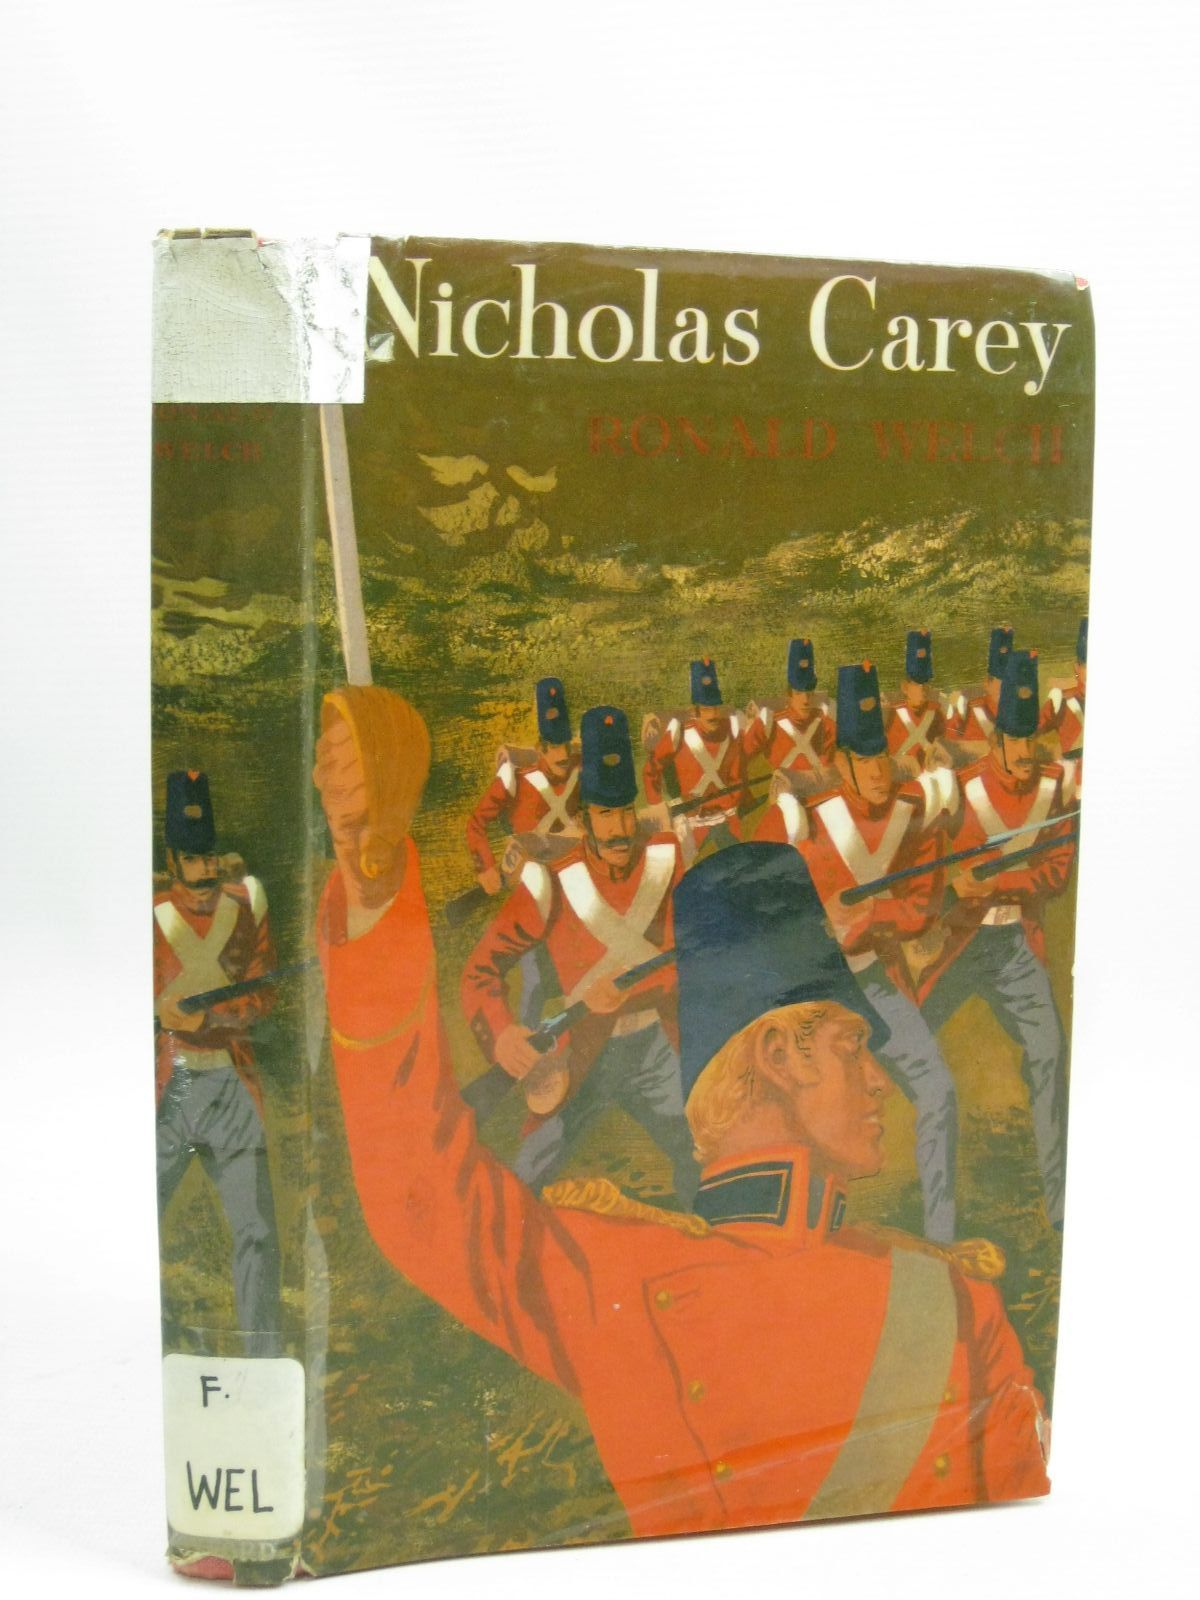 Photo of NICHOLAS CAREY written by Welch, Ronald illustrated by Stobbs, William published by Oxford University Press (STOCK CODE: 1405652)  for sale by Stella & Rose's Books